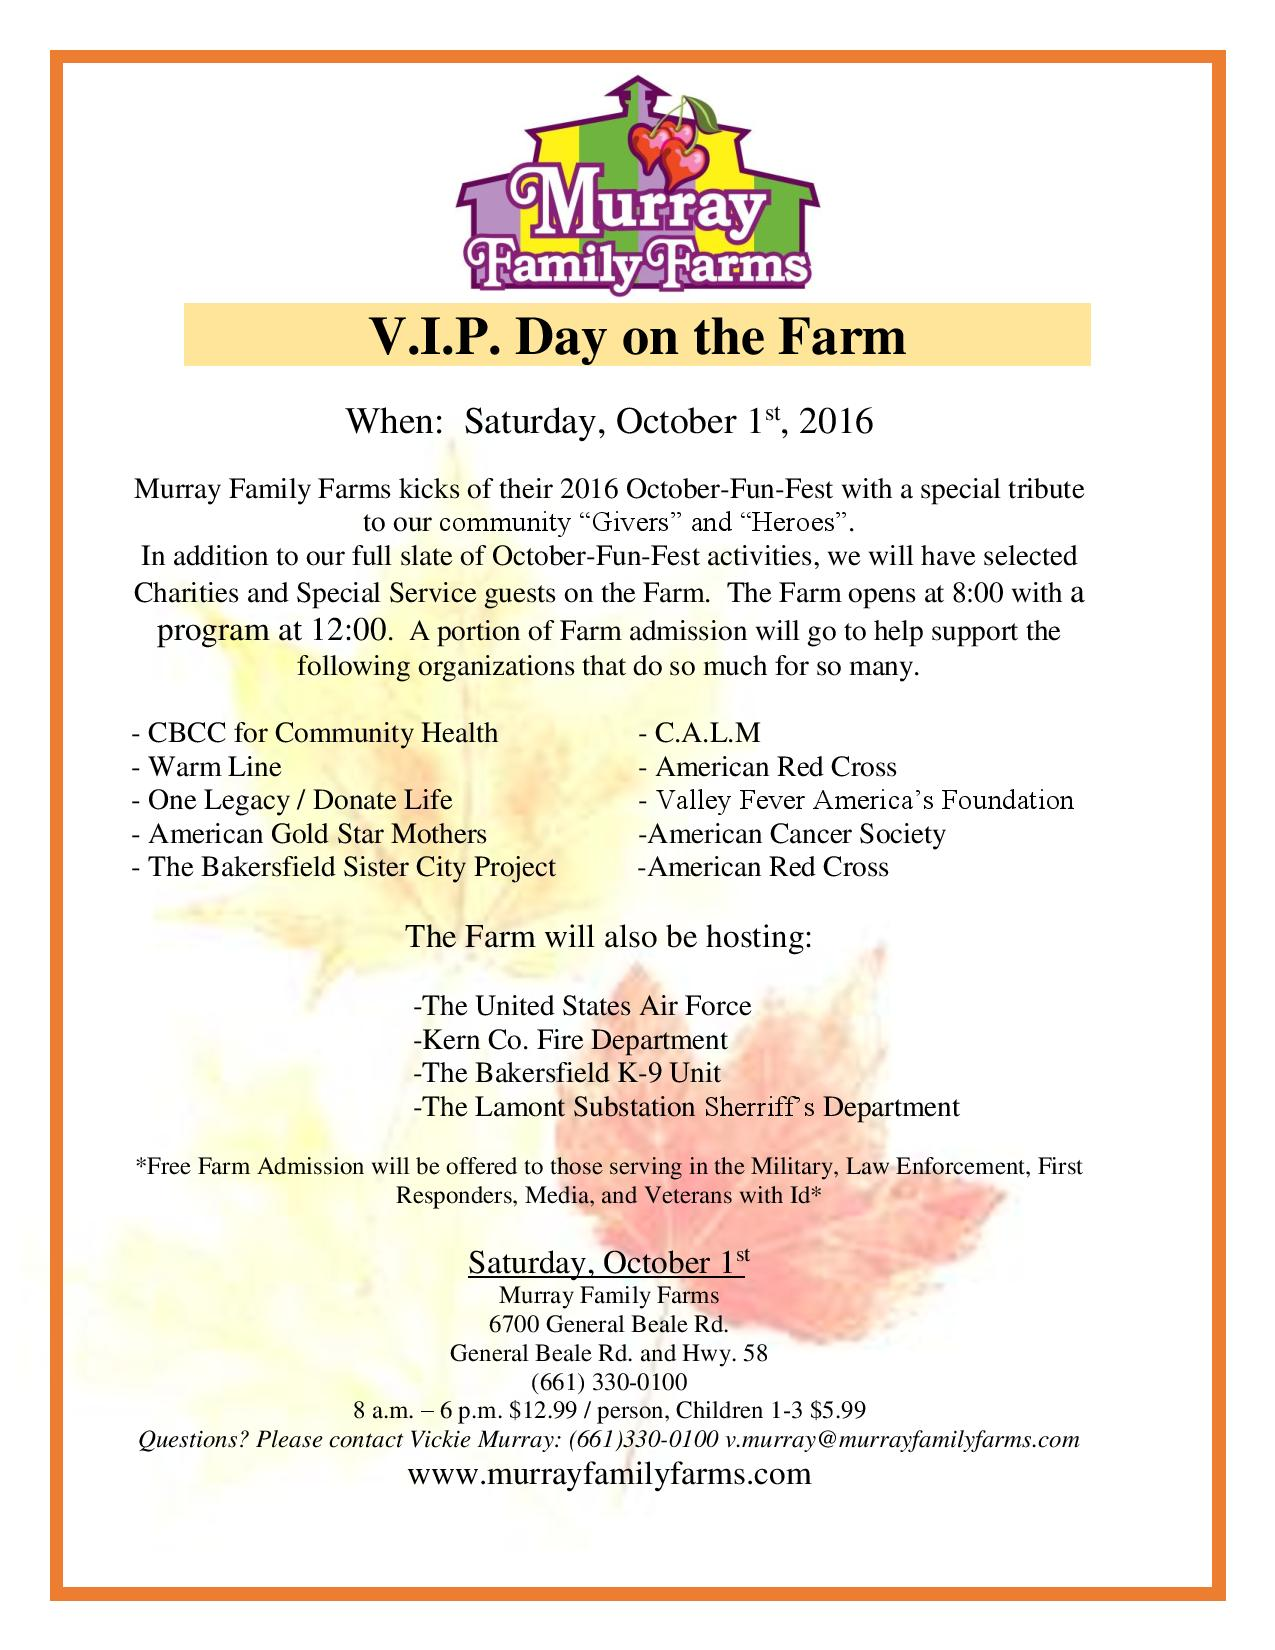 vip-day-on-the-farm-murray-2016